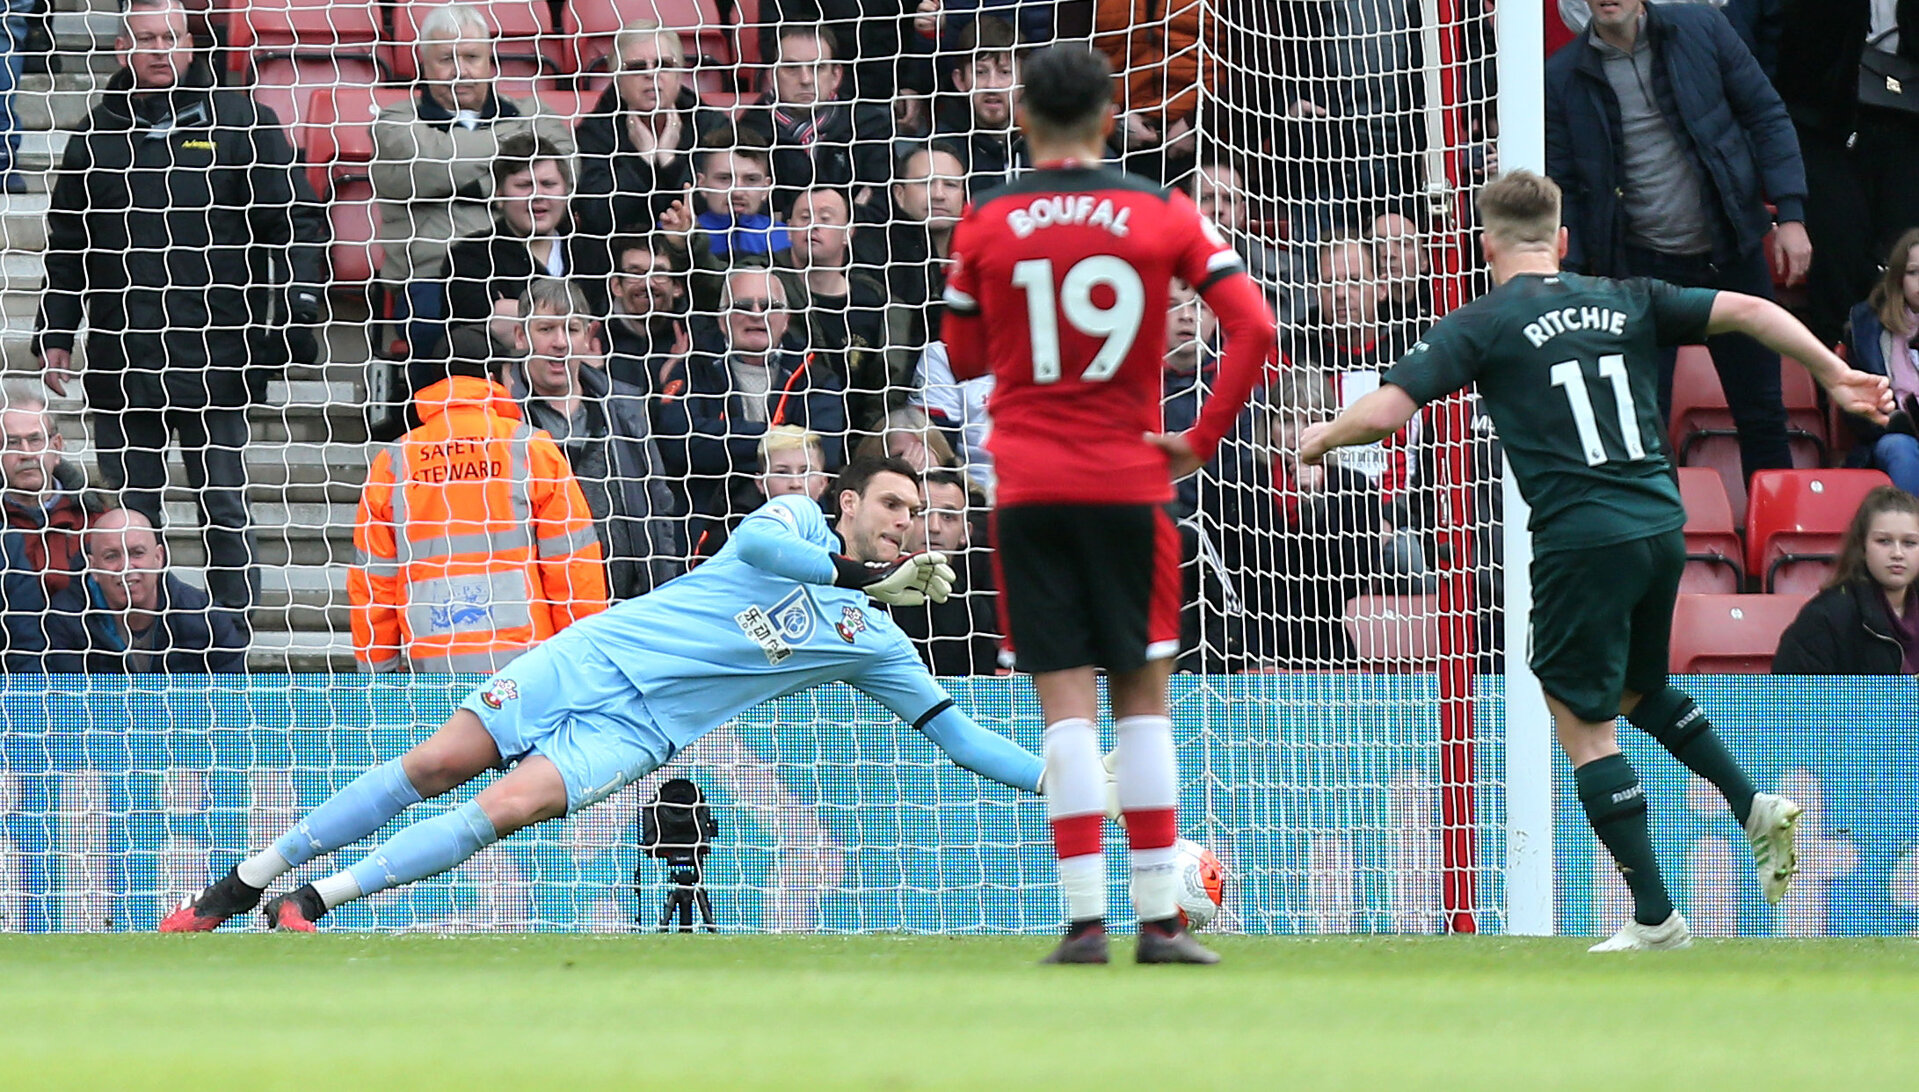 SOUTHAMPTON, ENGLAND - MARCH 07: Alex McCarthy saves a penalty during the Premier League match between Southampton FC and Newcastle United at St Mary's Stadium on March 7, 2020 in Southampton, United Kingdom. (Photo by Chris Moorhouse/Southampton FC via Getty Images)